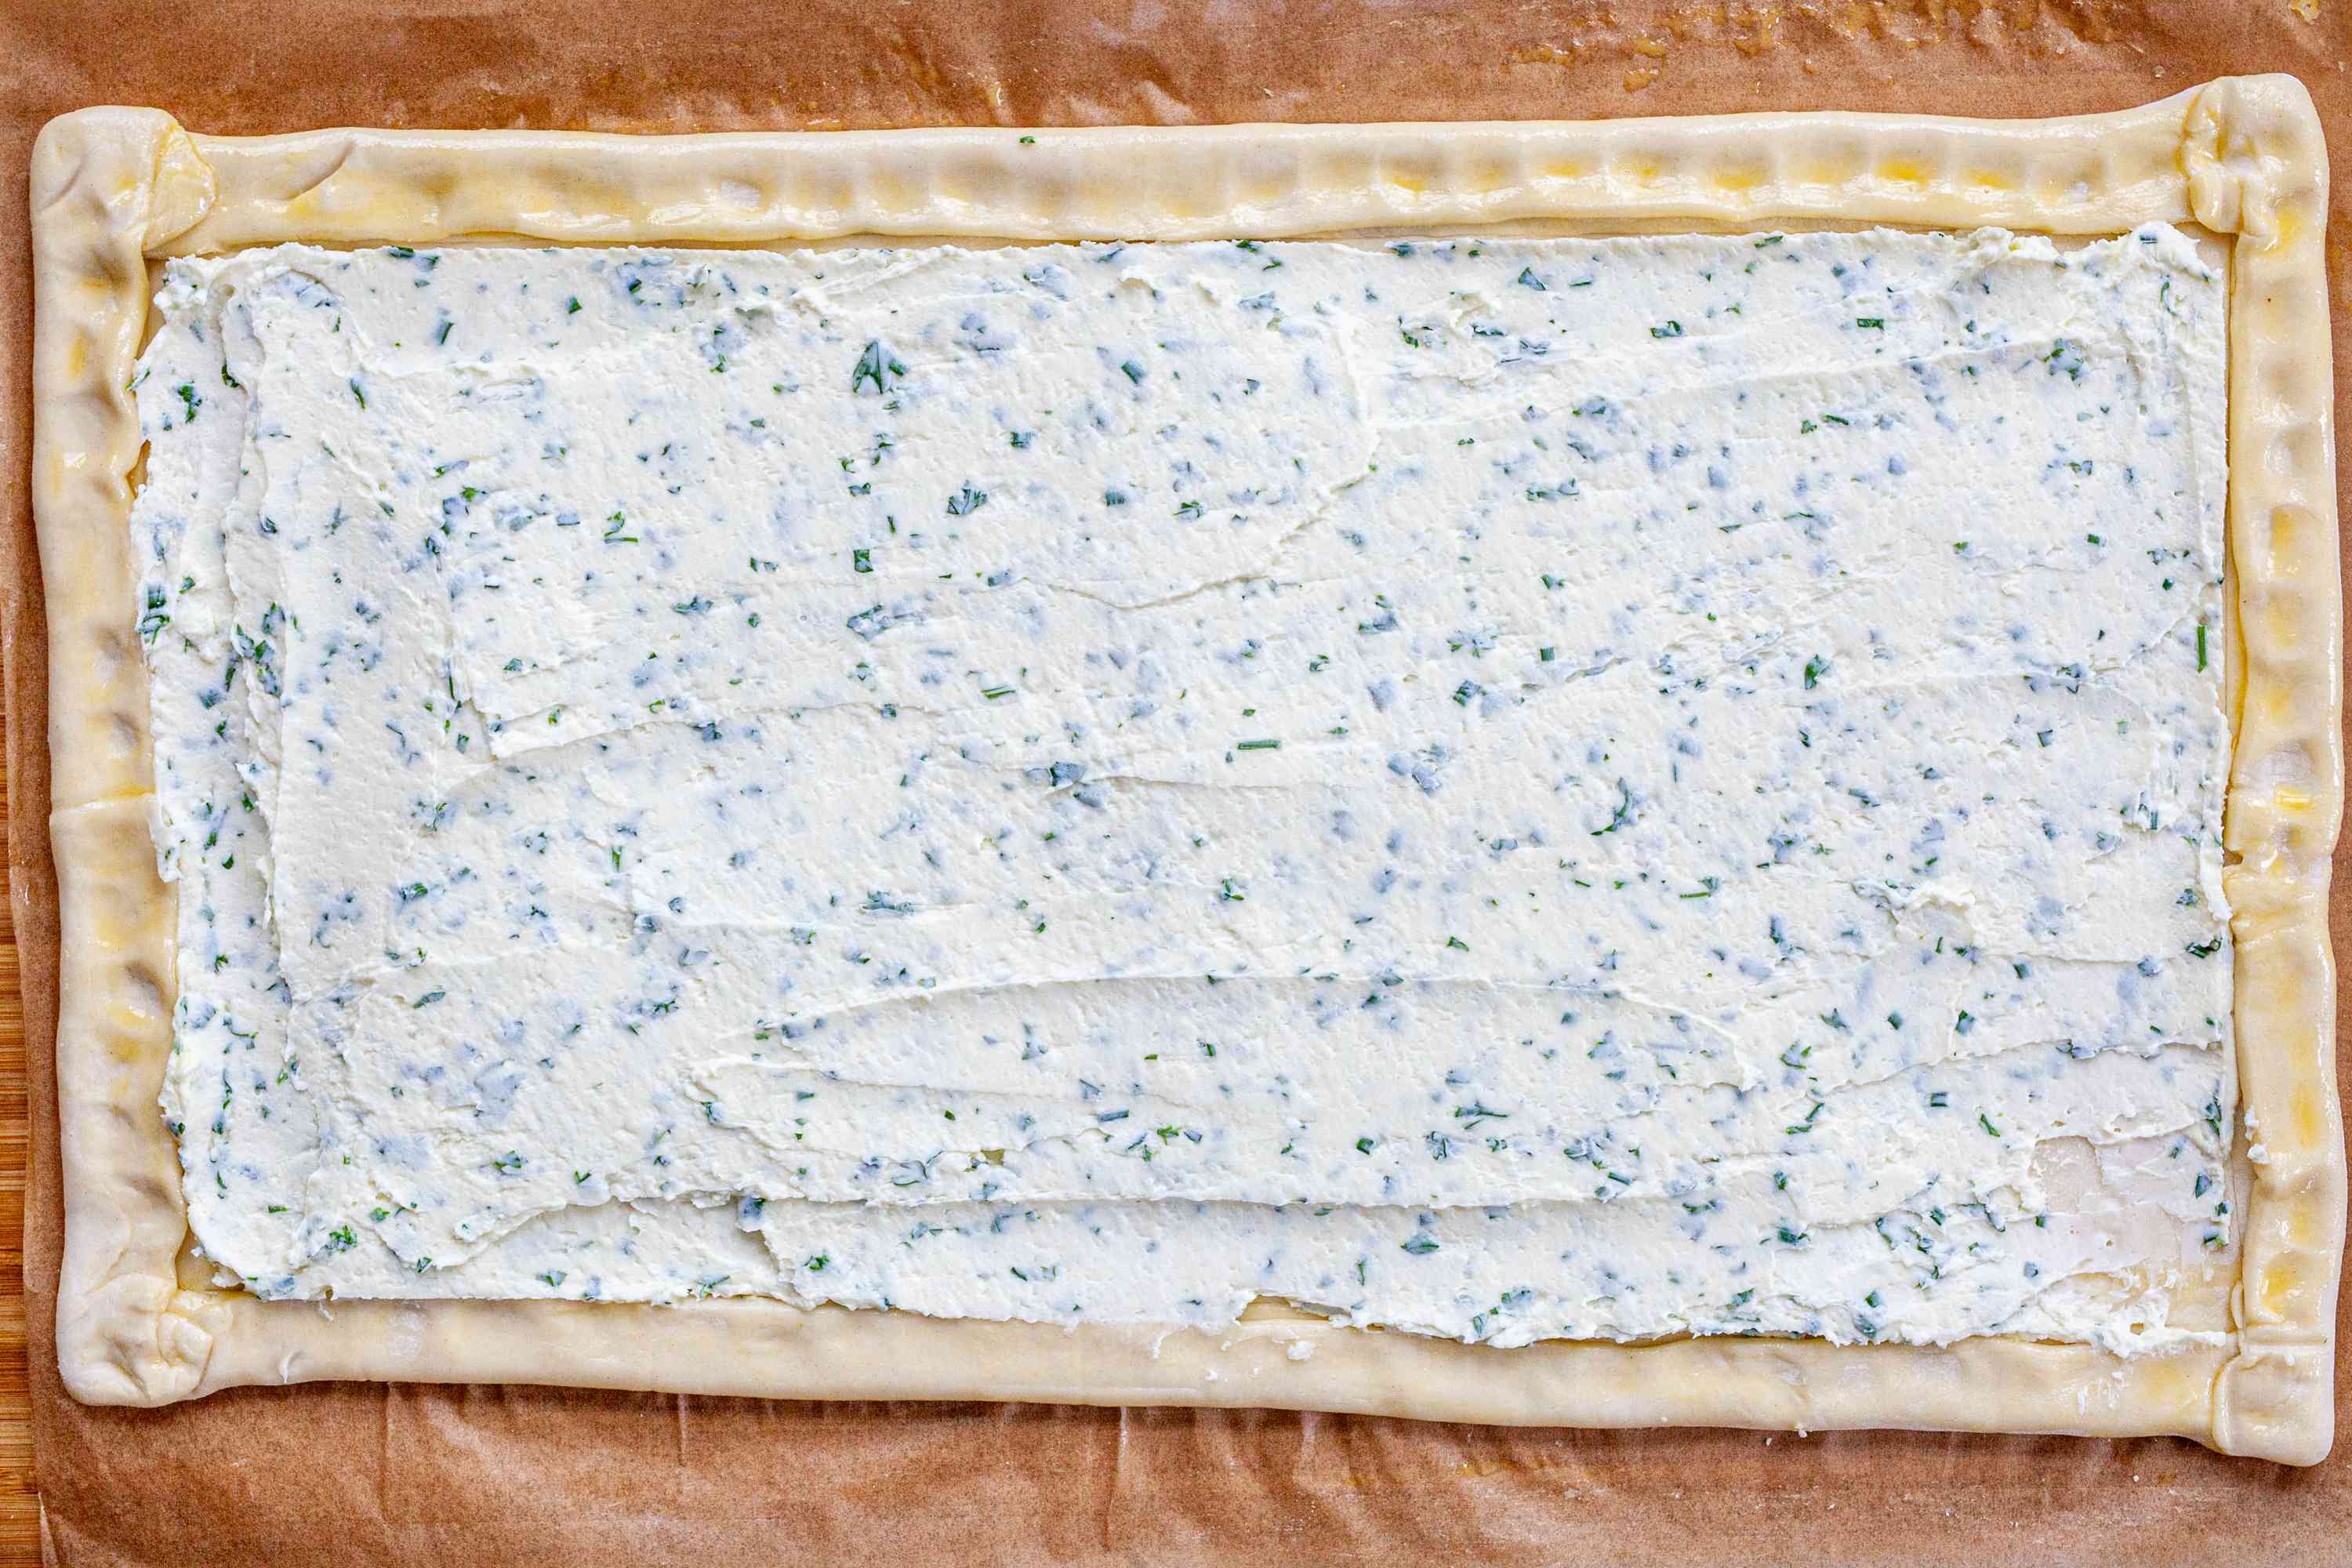 Goat cheese spread on puff pastry to make a Spring Asparagus Tart.